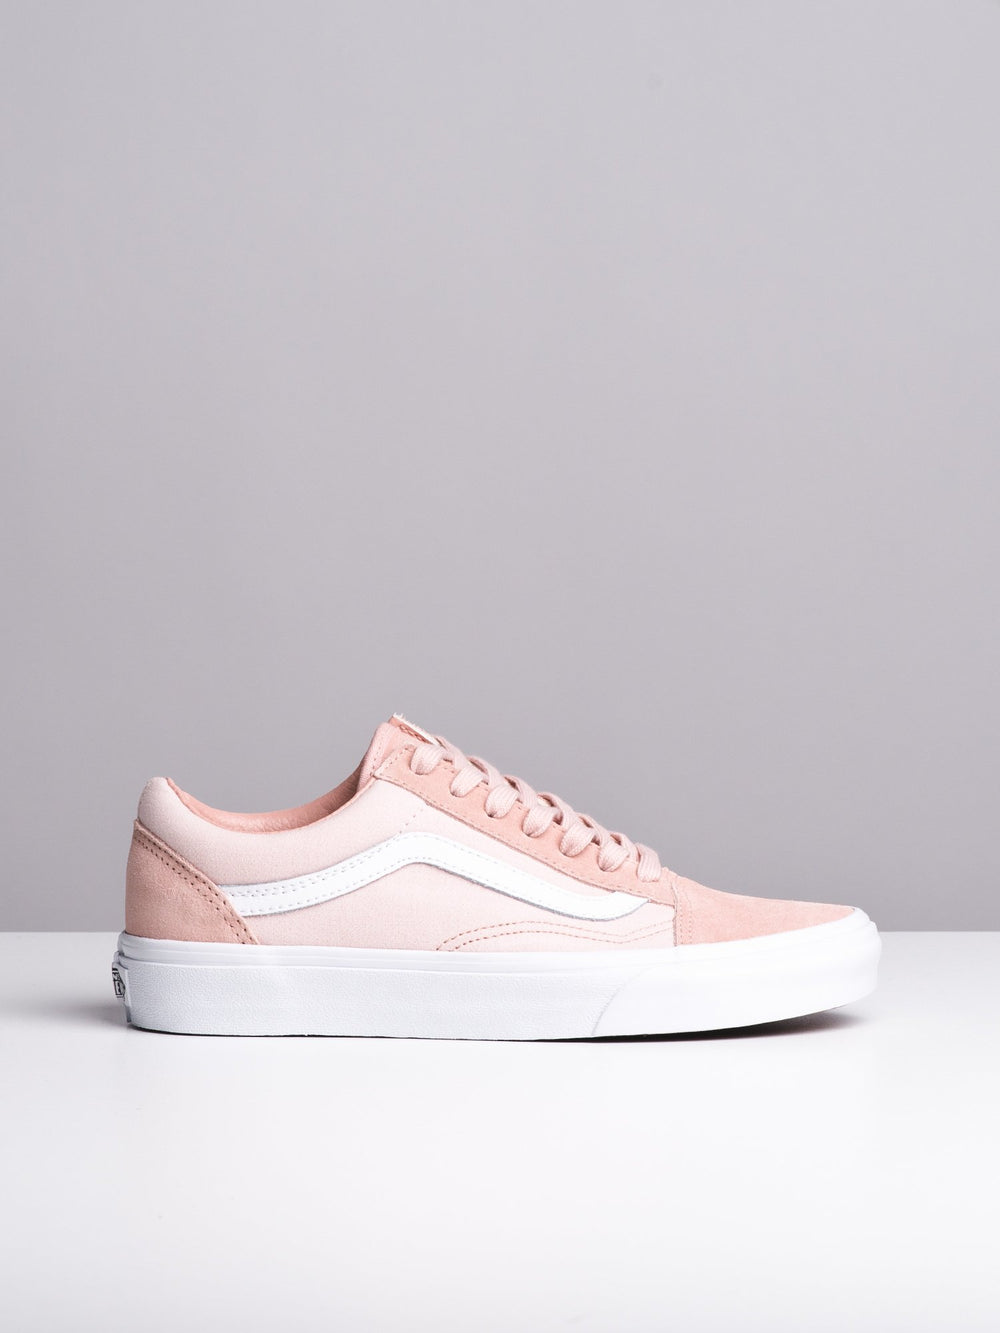 16eb531ca6f512 WOMENS OLD SKOOL SUITING SAND CANVAS SHOES- CLEARANCE